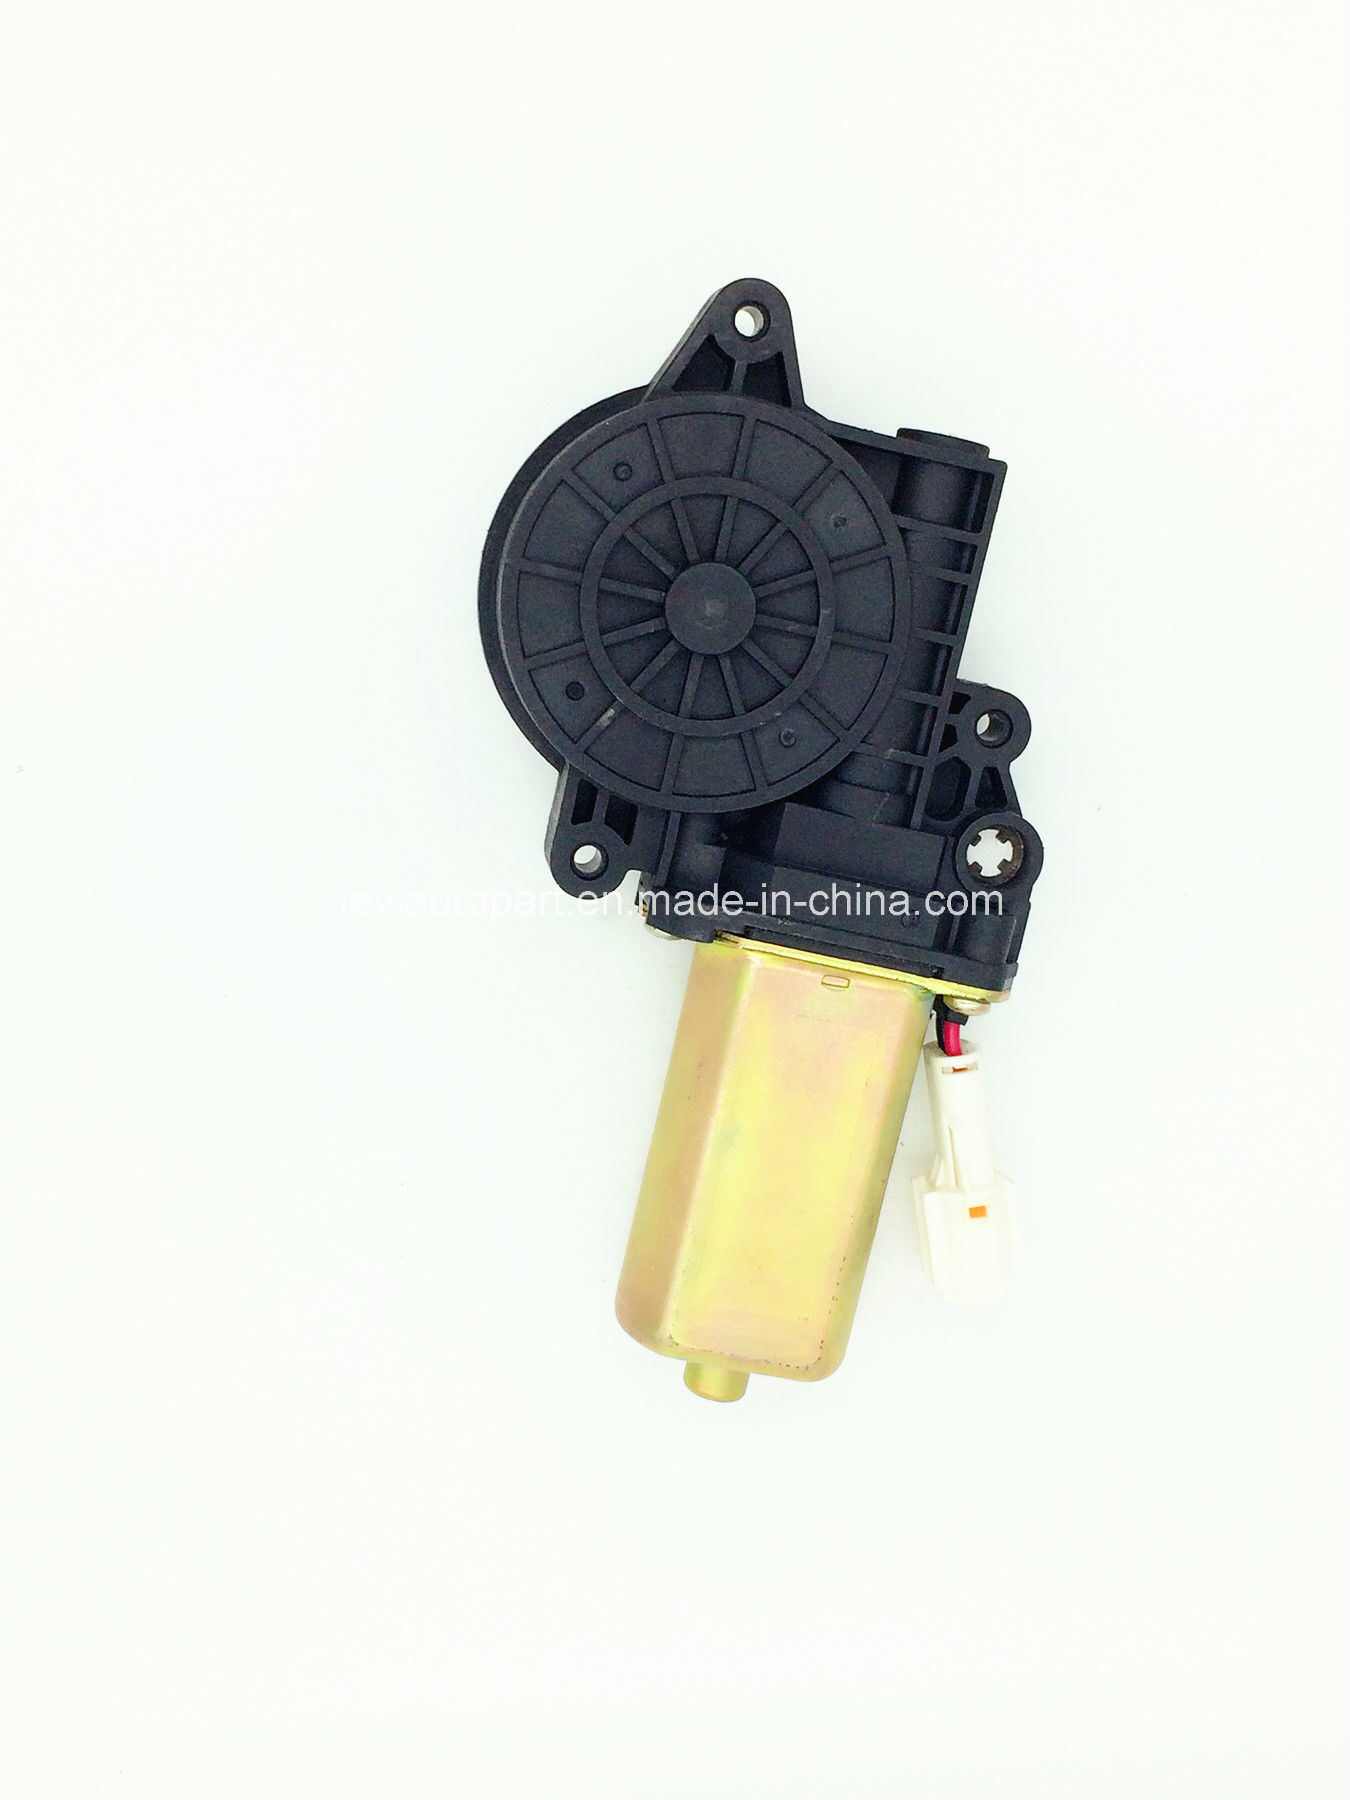 Used for DC Motor Car